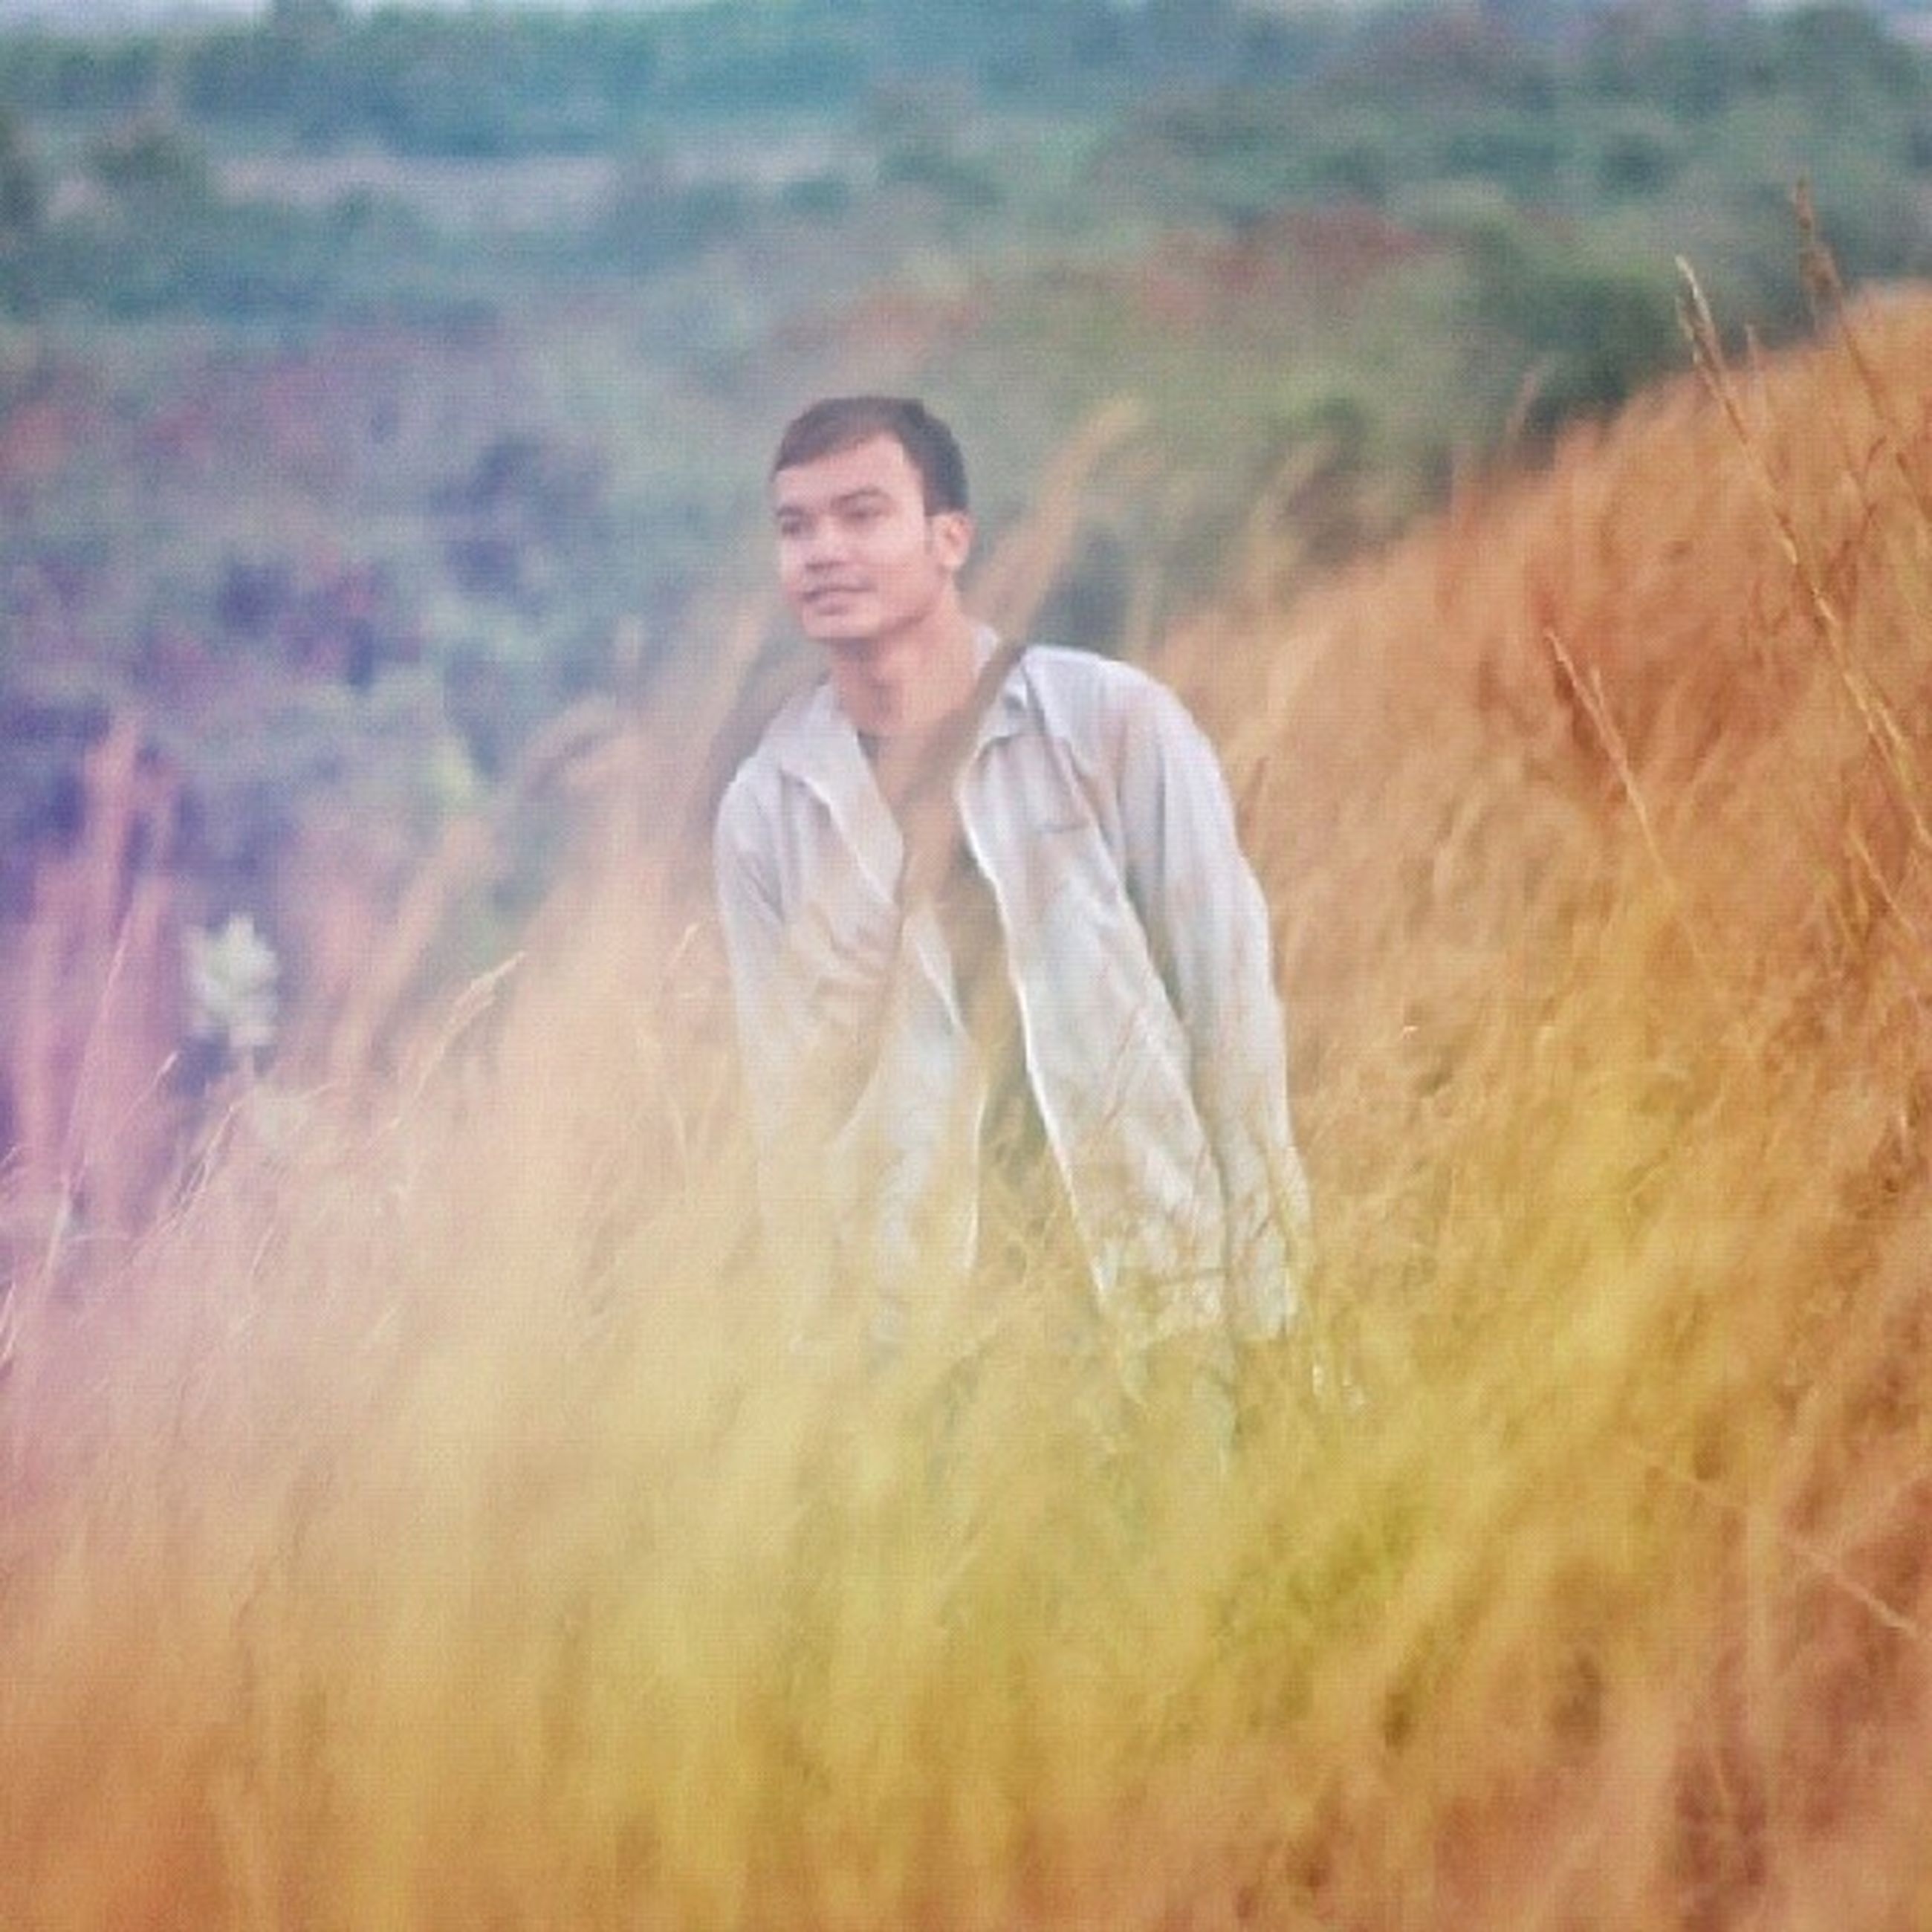 person, lifestyles, leisure activity, casual clothing, waist up, portrait, looking at camera, front view, three quarter length, focus on foreground, standing, young adult, nature, smiling, field, outdoors, childhood, selective focus